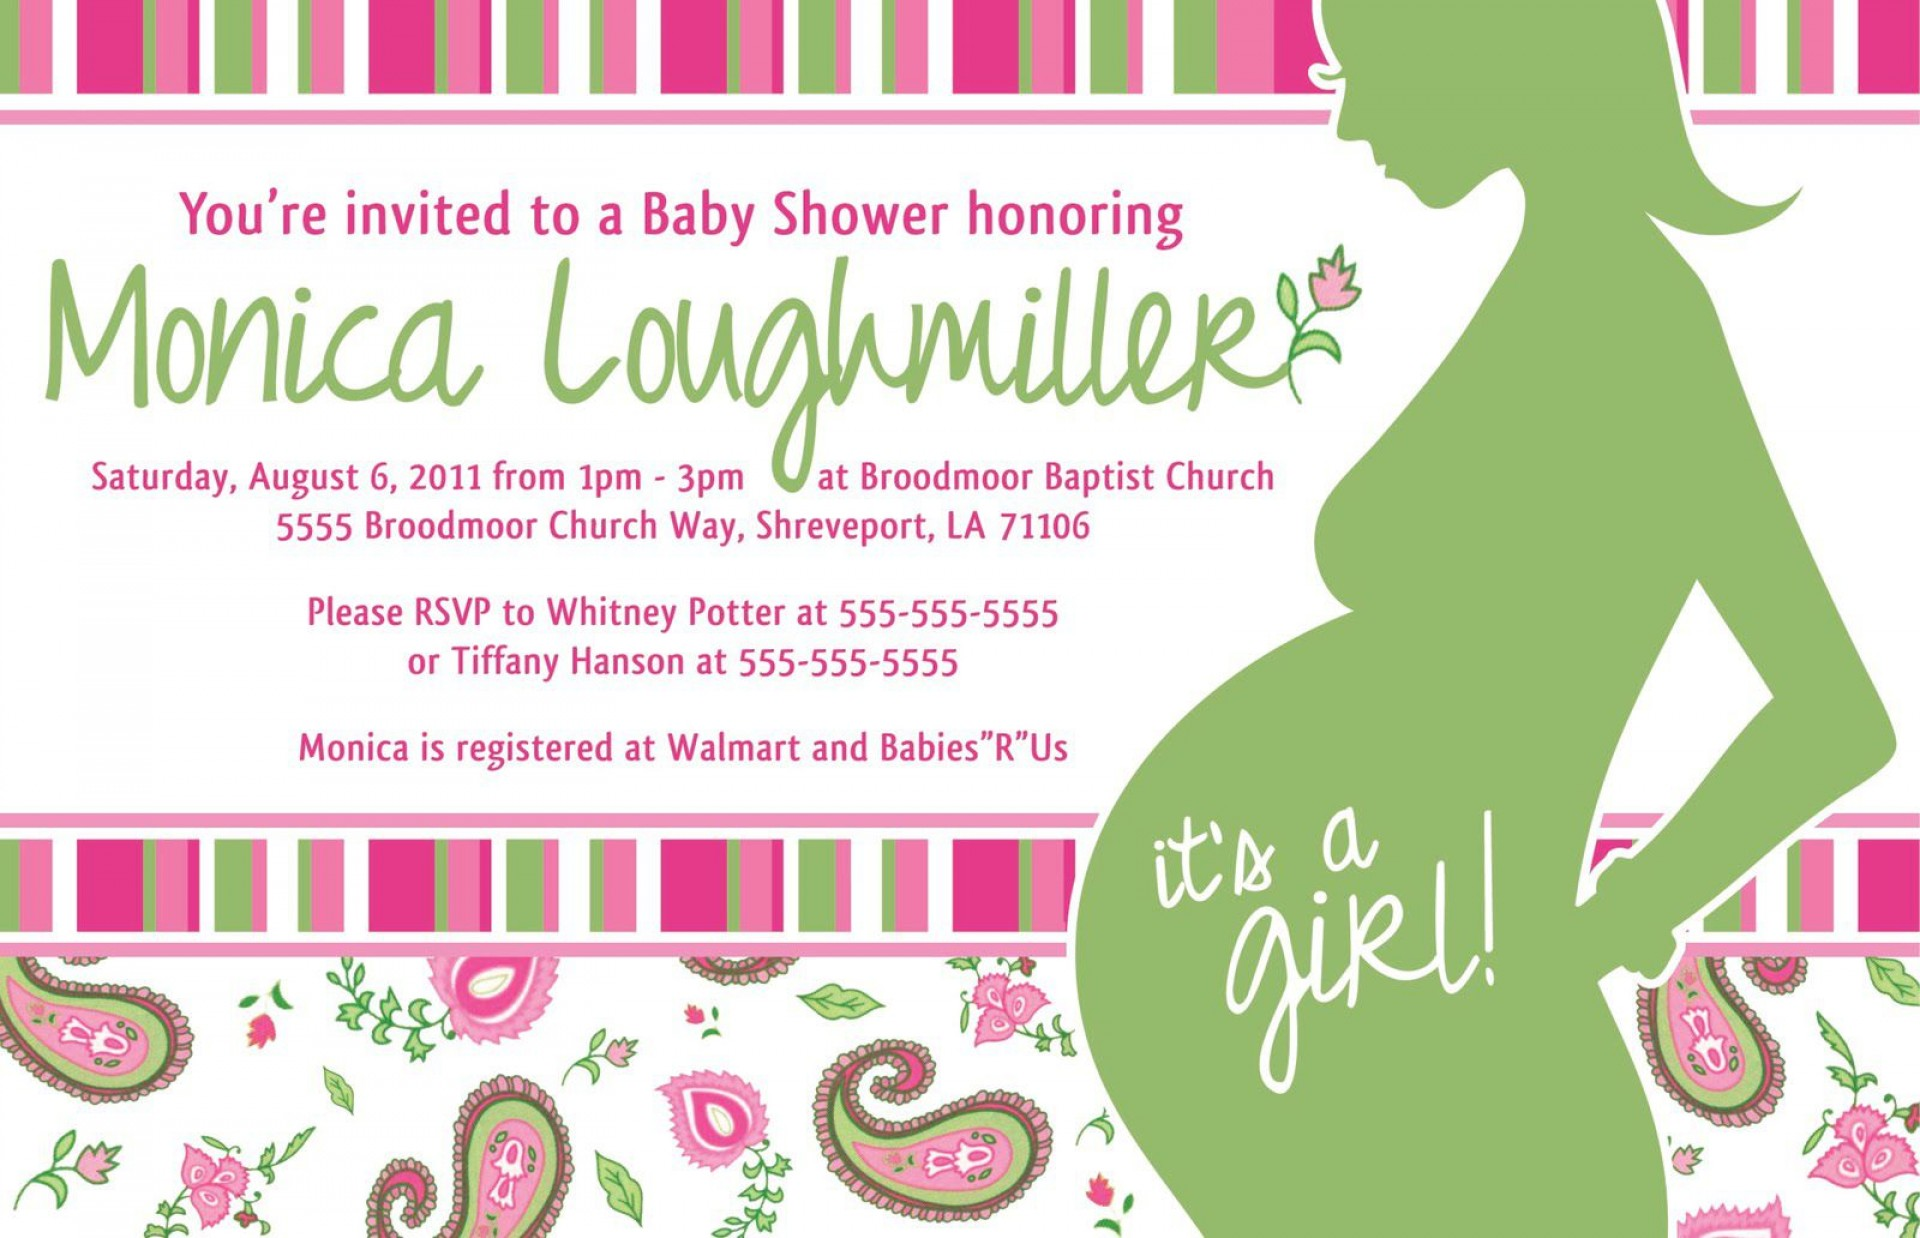 008 Rare Baby Shower Invitation Template Word Photo  Office Wording Sample Work Download1920